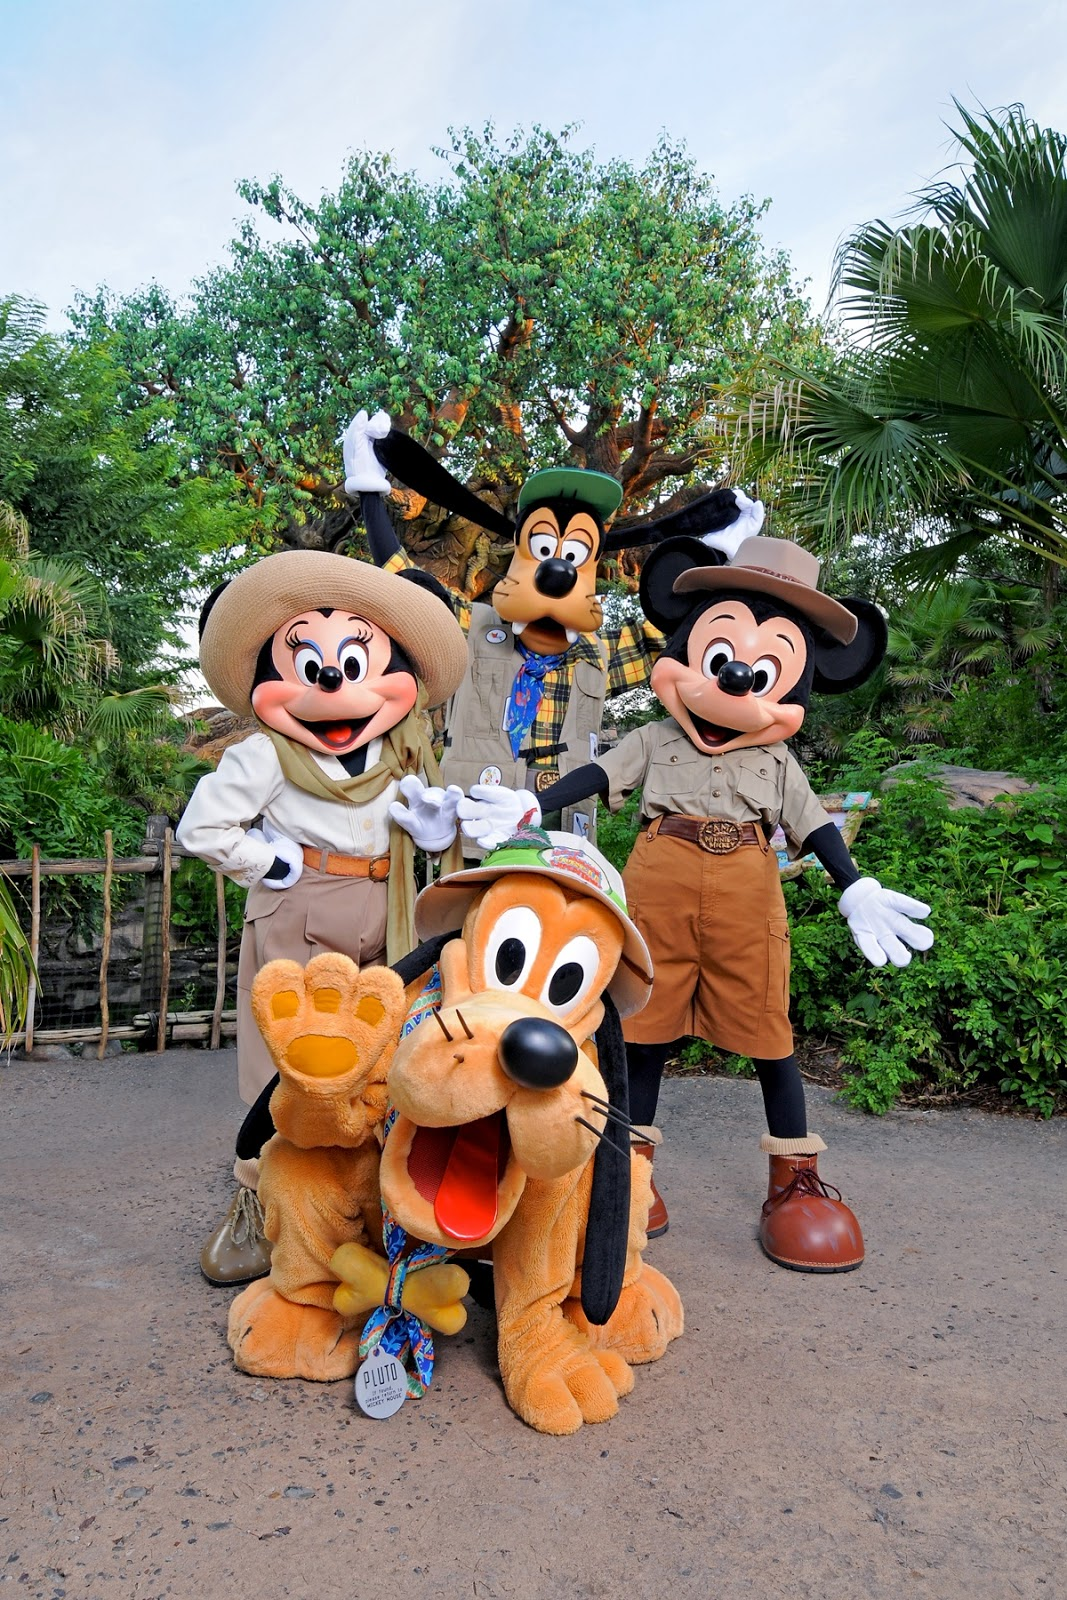 Get free Disney's PhotoPass coupon codes, promo codes & deals for Nov. Saving money starts at ophismento.tk